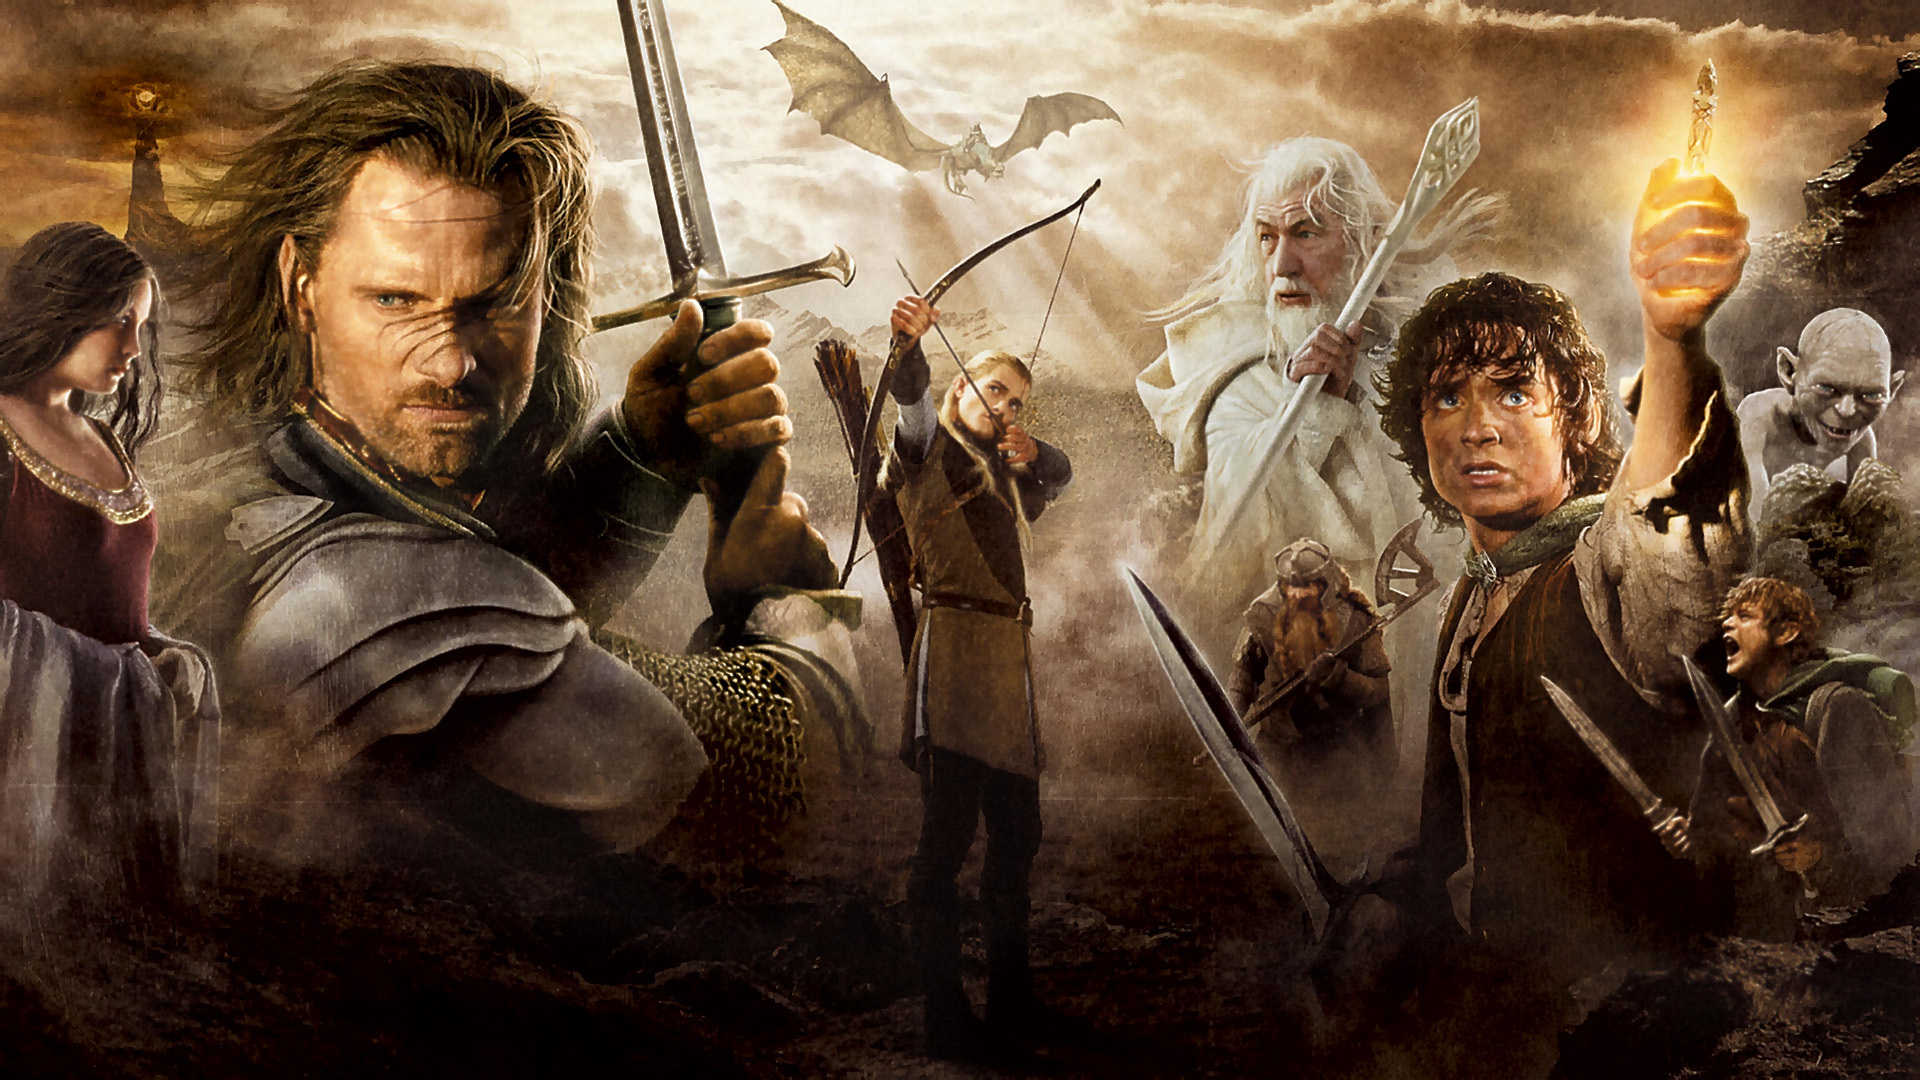 High Quality Lord Of The Rings Wallpaper | Full HD Pictures